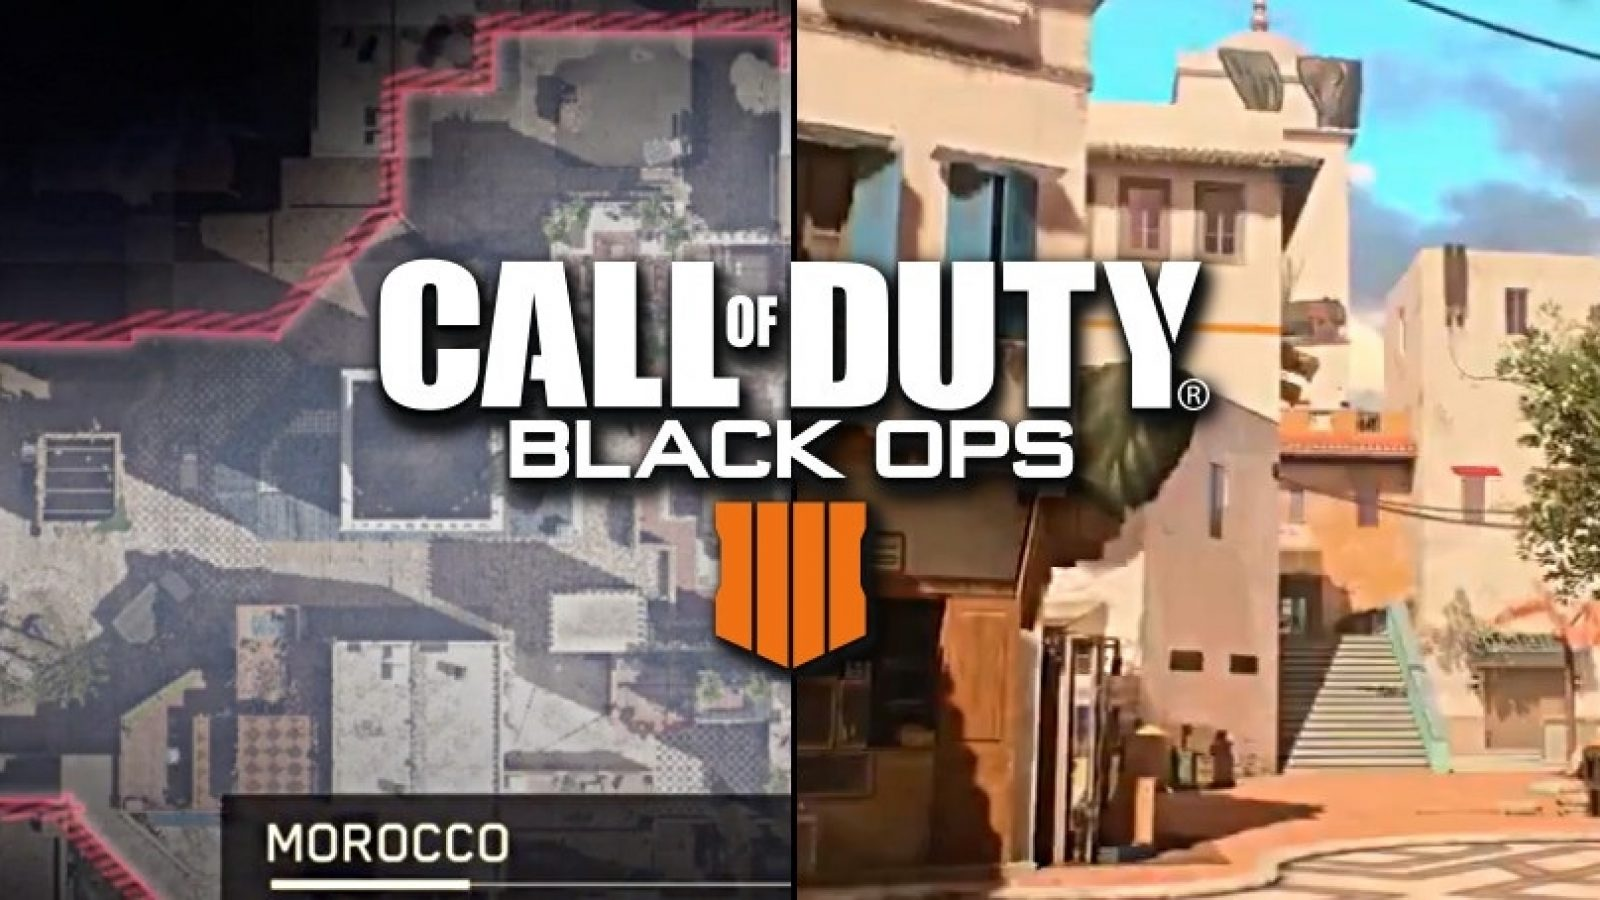 Treyarch studio reveals a 12th map for Call of Duty Black Ops 4, Morocco.